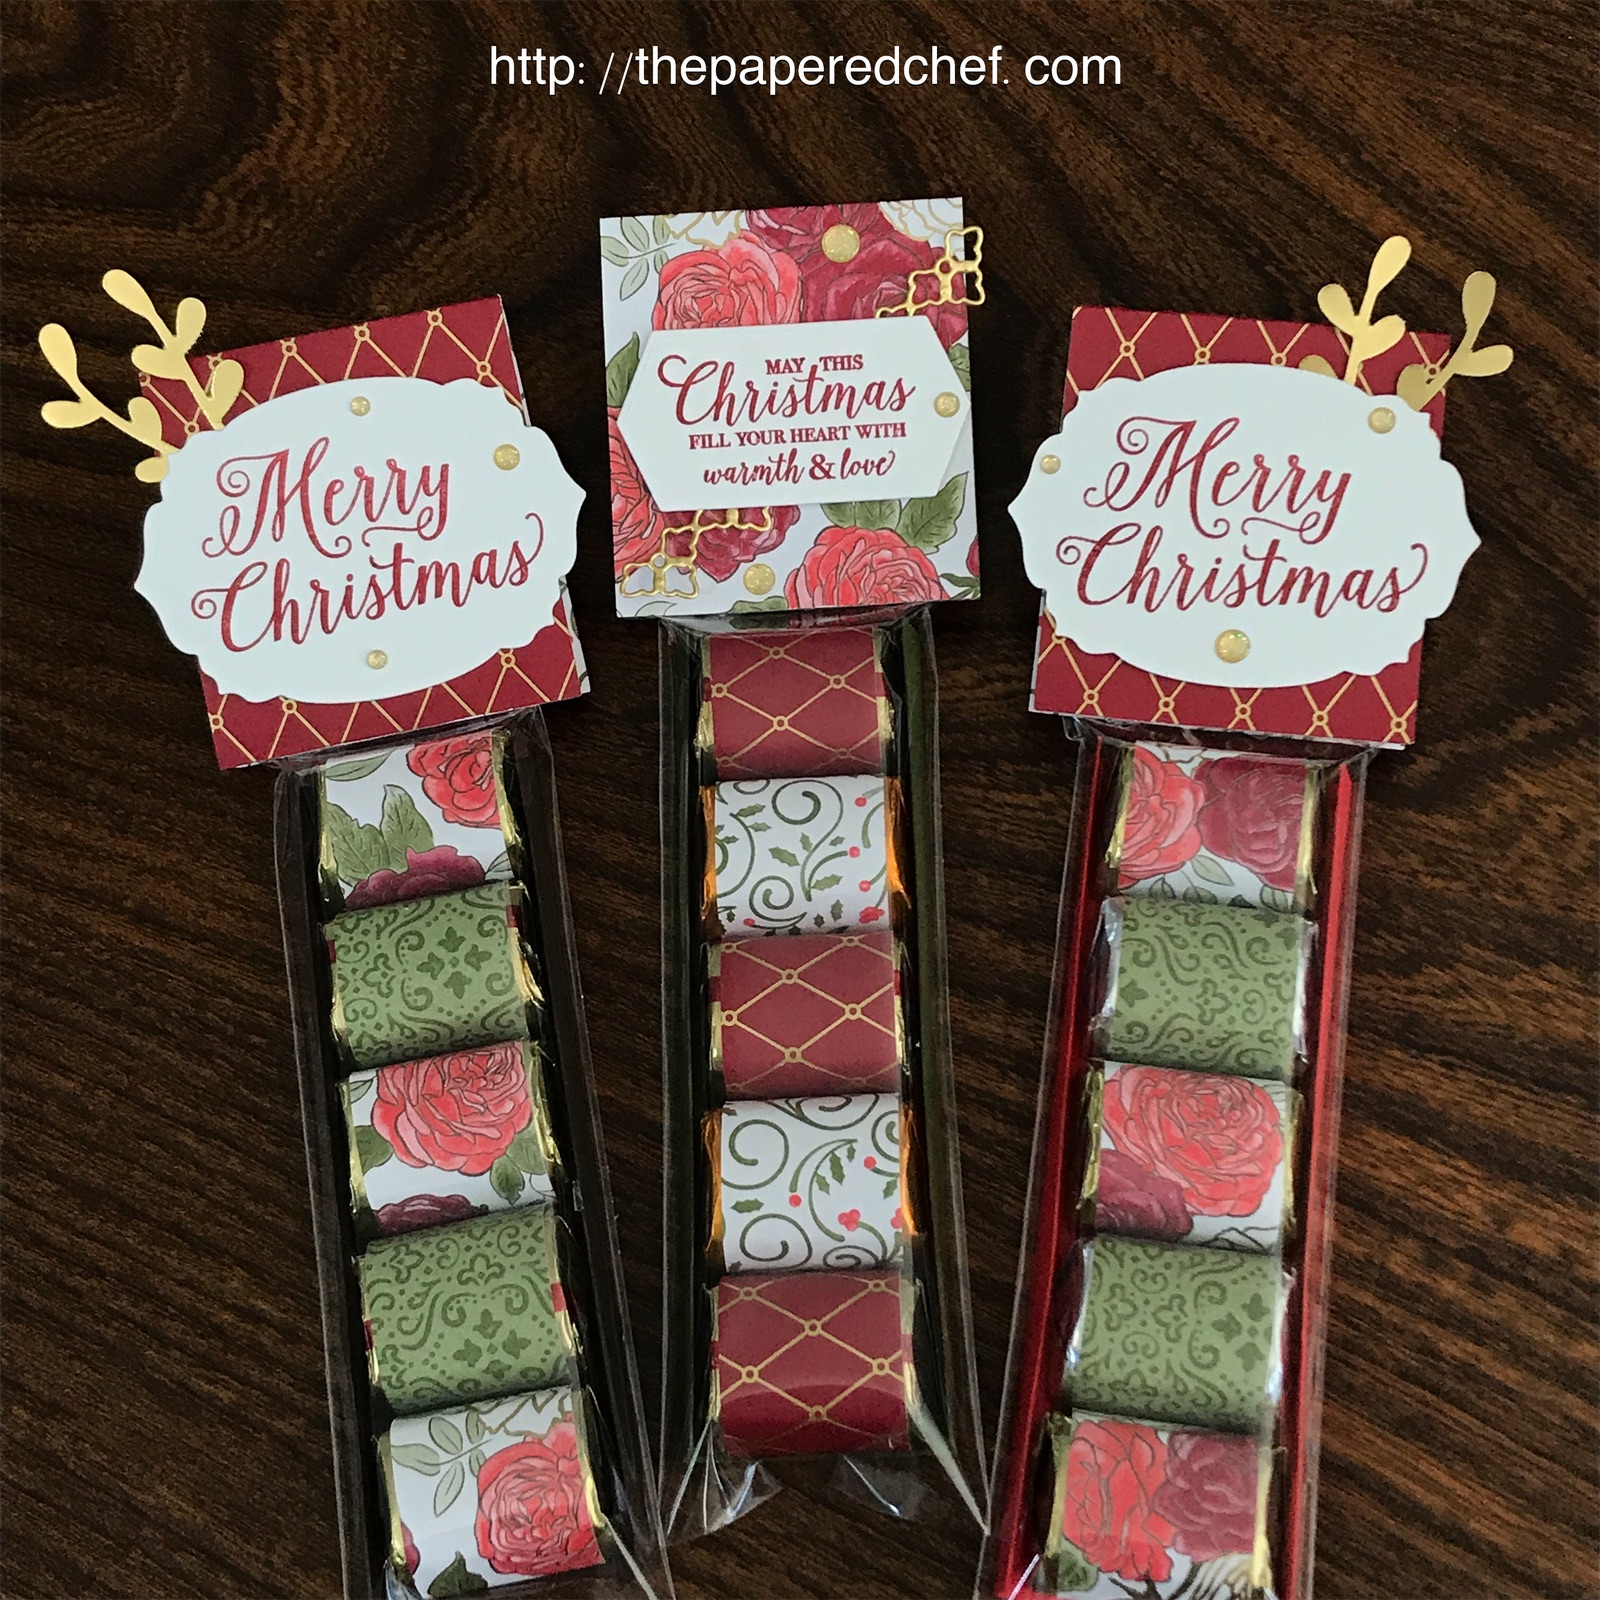 Christmastime is Here Suite - Hershey Nugget Treats